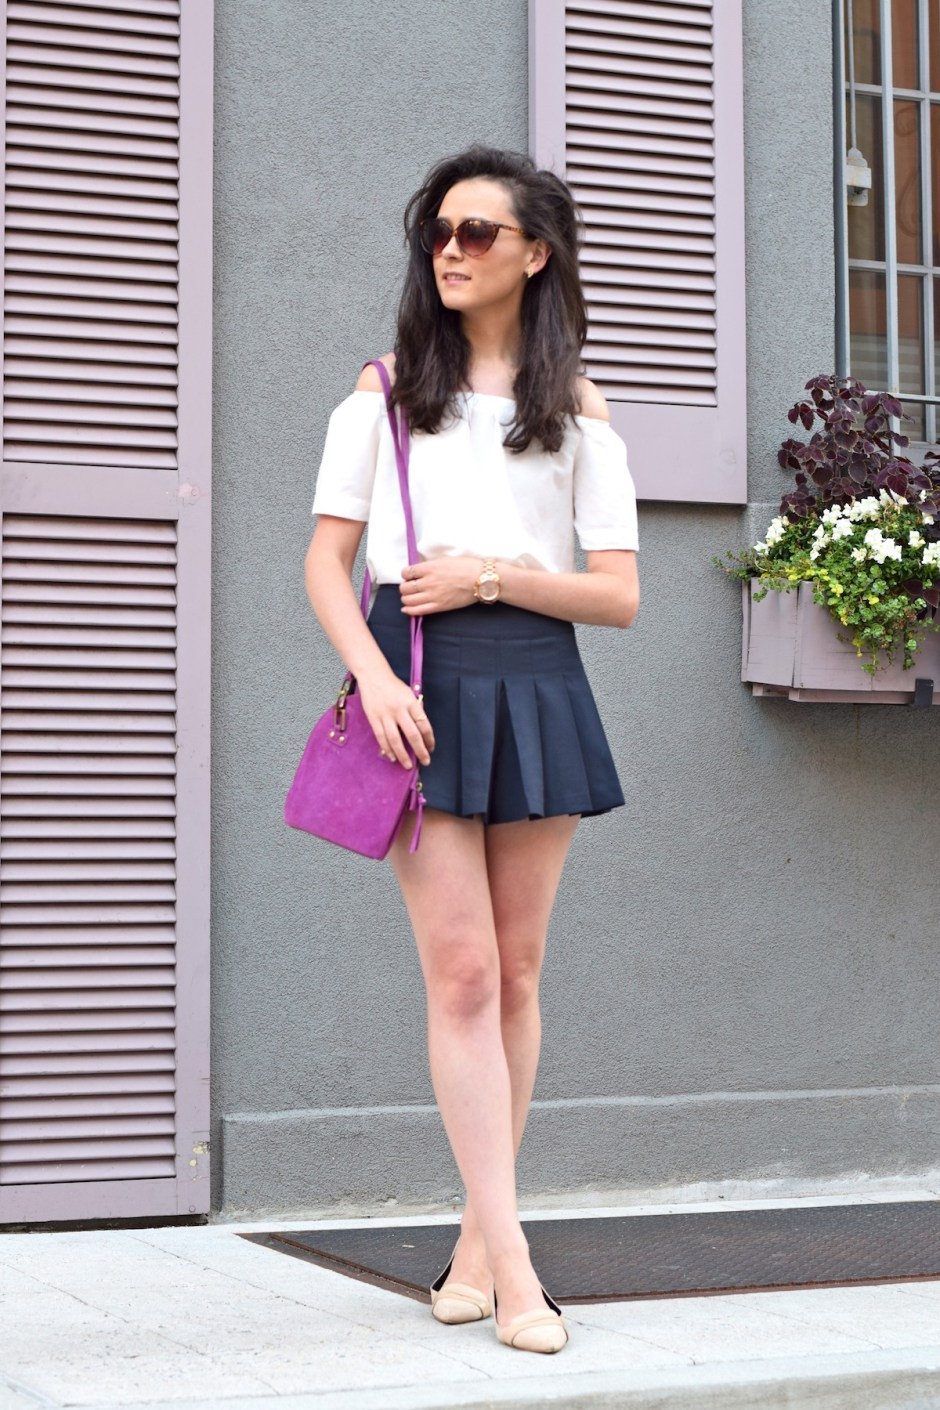 irish fashion: Off The Shoulder Top and Pleated Skirt 1